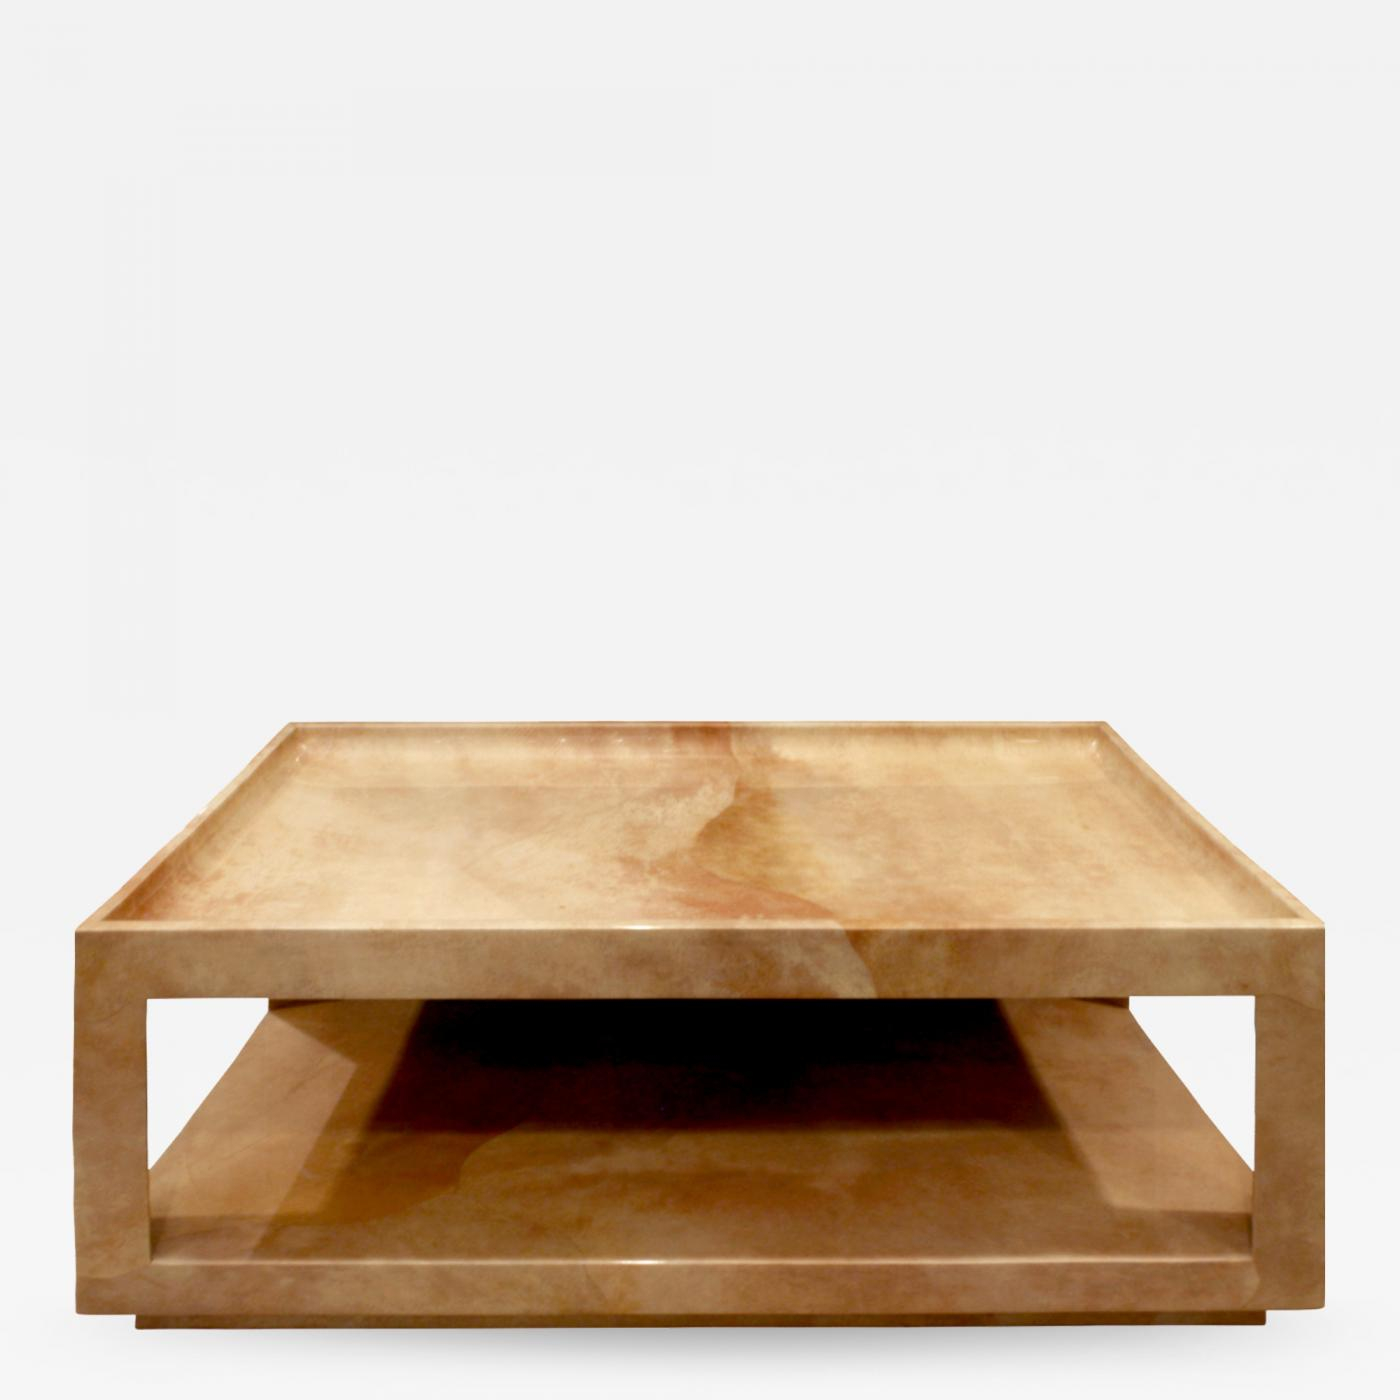 Karl Springer Triangular Leg Coffee Table In Goatskin 1980s throughout size 1400 X 1400